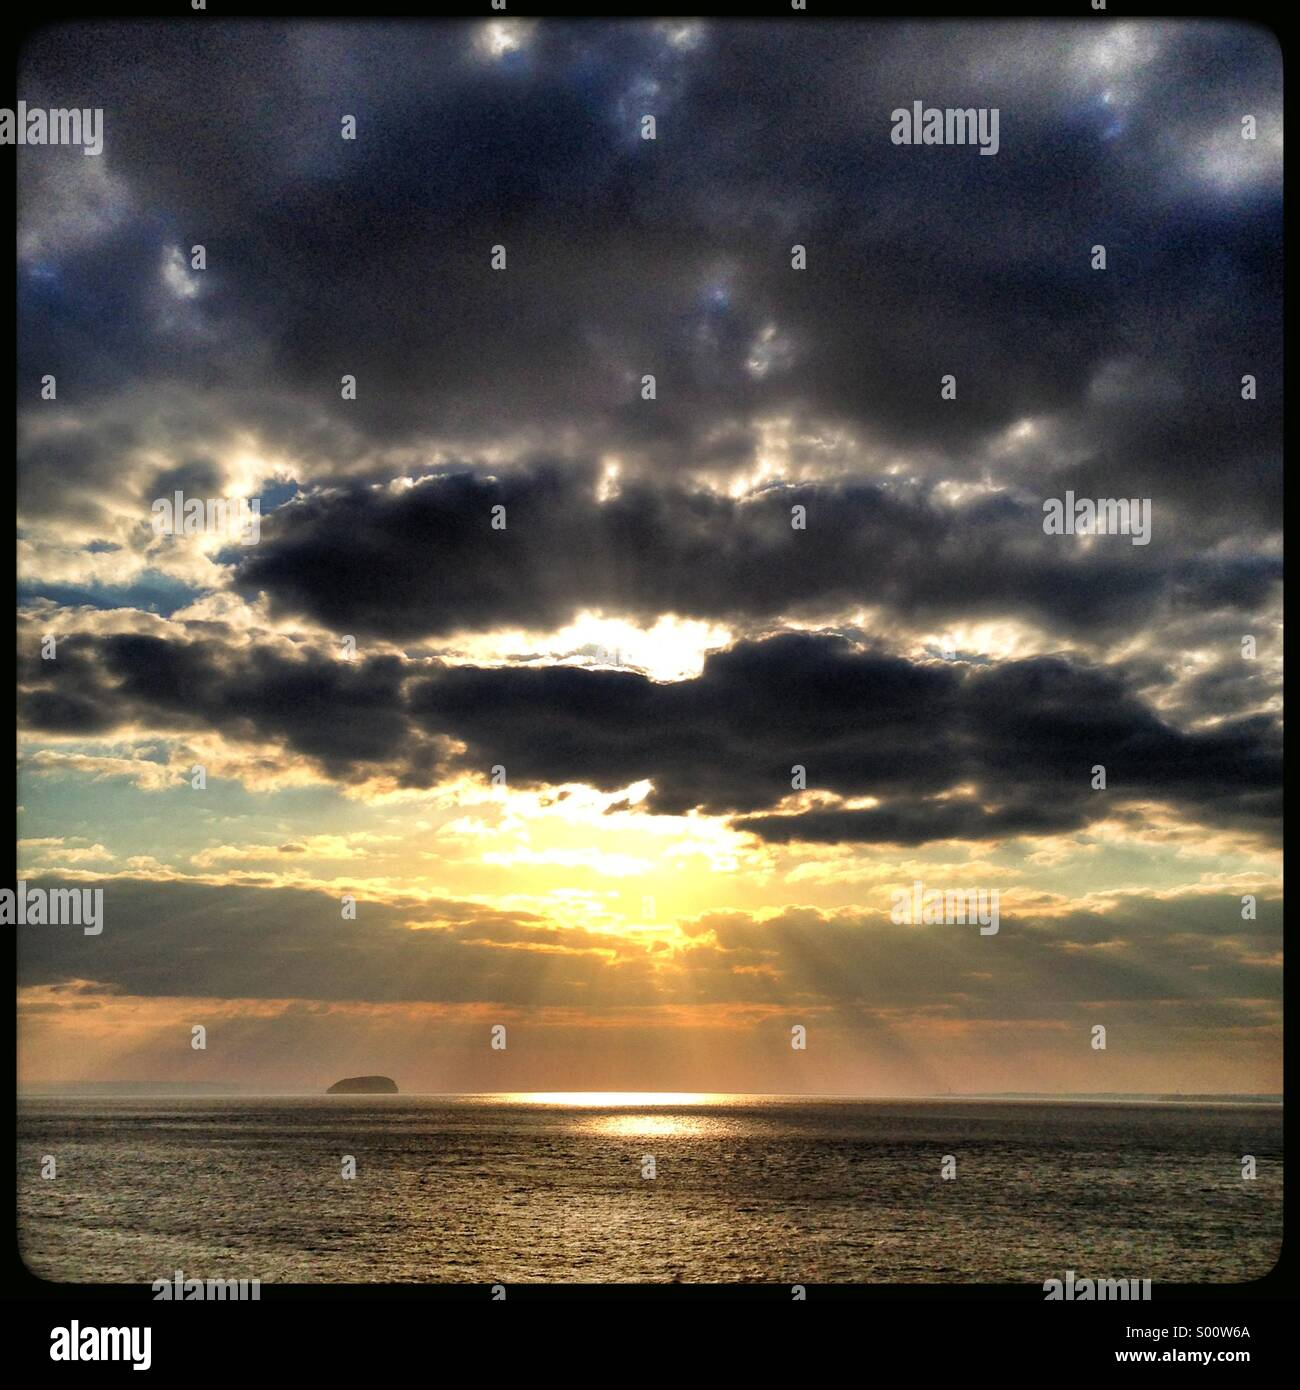 Dramatic sunset looking out to sea - Stock Image